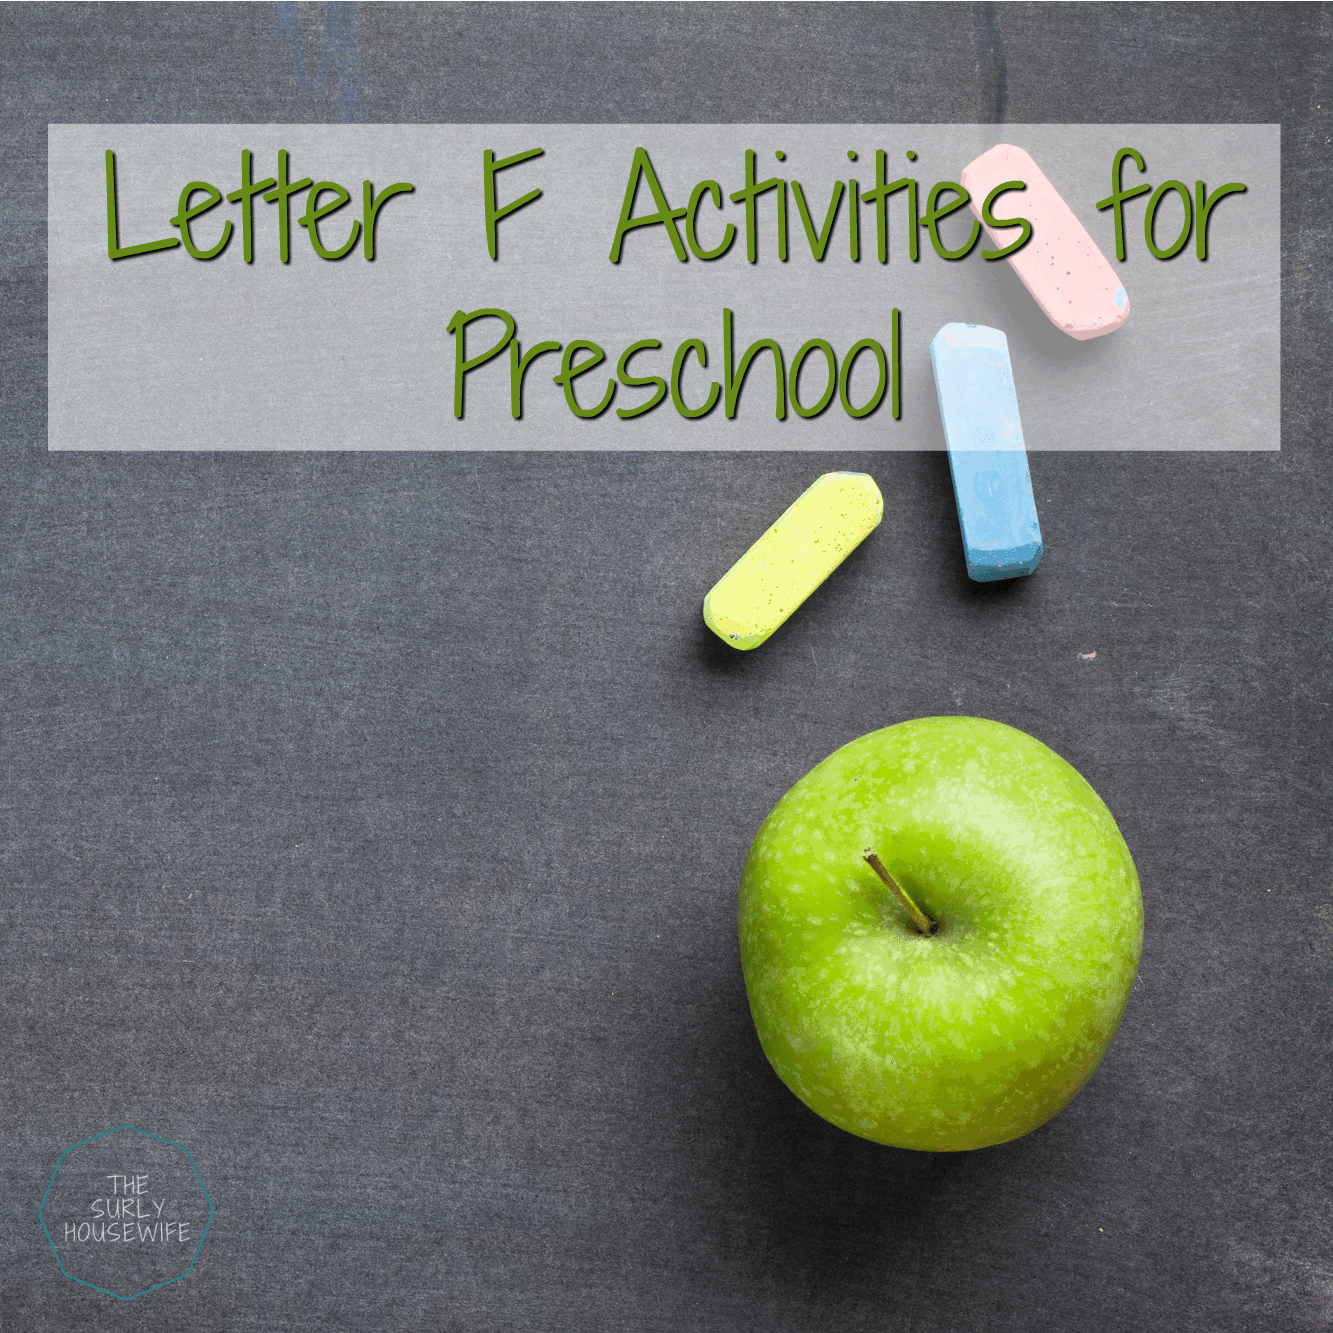 Letter of the week preschool activities and crafts are a fun and hands-on way for toddlers, preschoolers, and kindergartens to learn and practice the alphabet. Letter F in our preschool was made up of fairy and frog printables. As well as a fun fireworks sensory activity with shaving cream. Check it out!